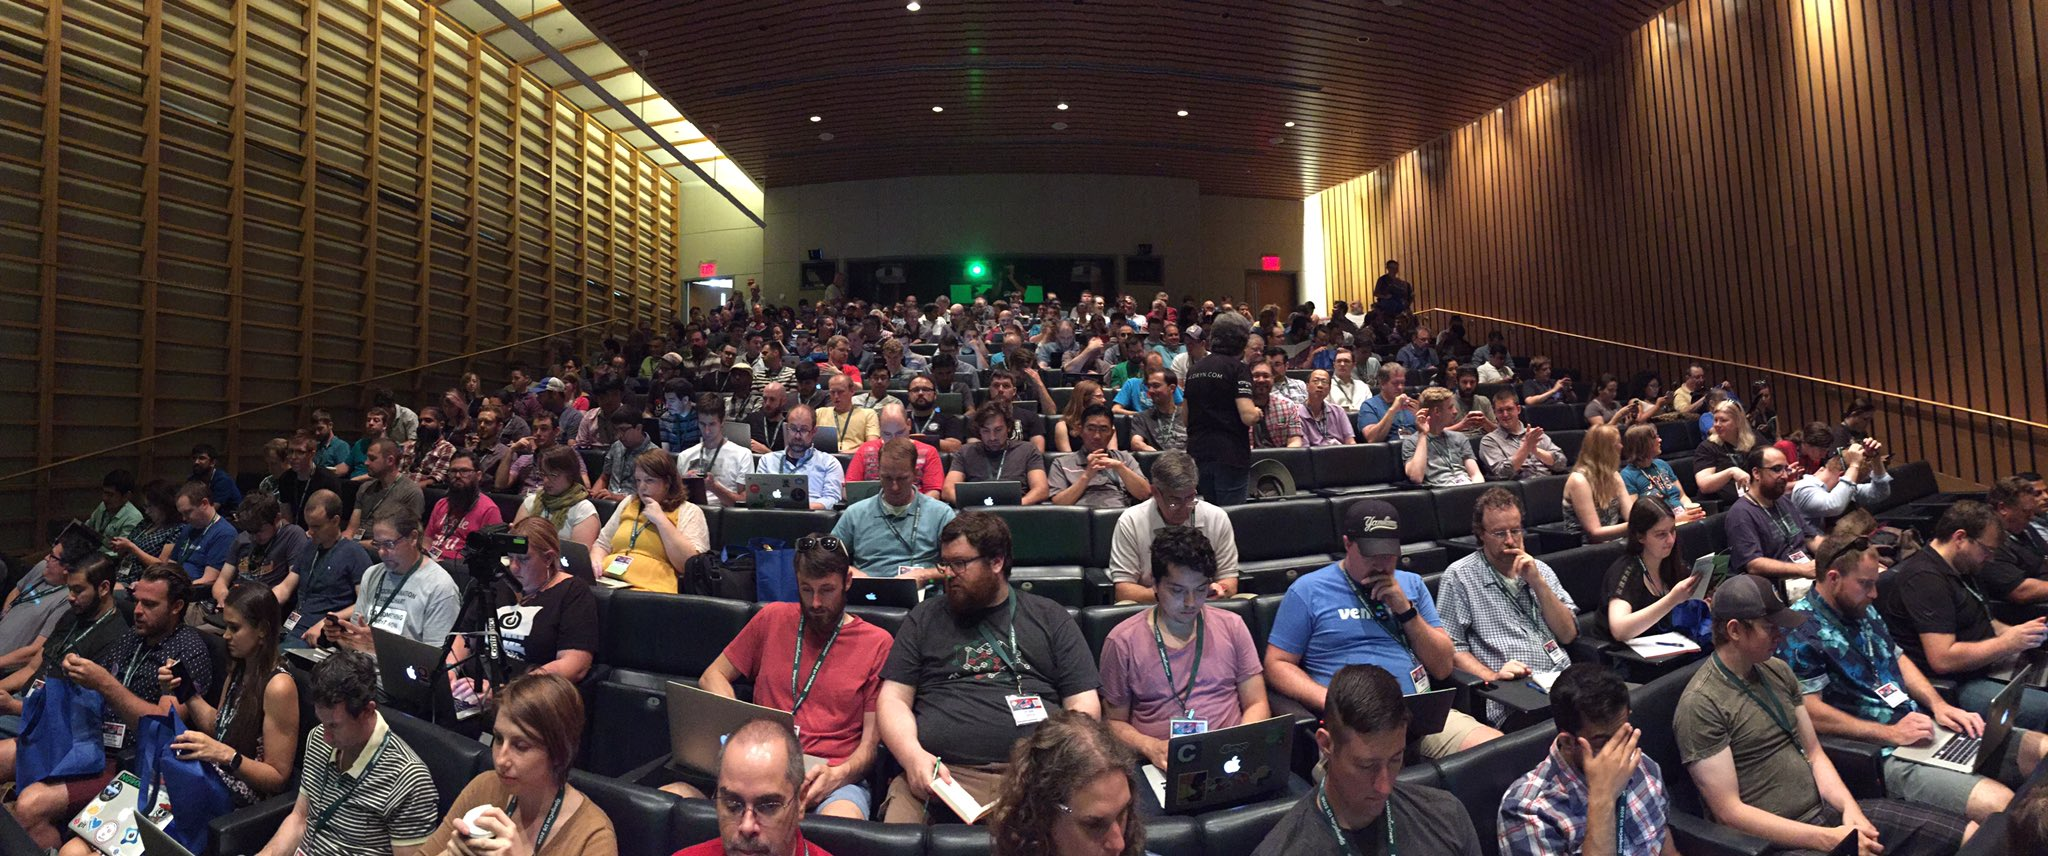 There are a few people at the #djangocon 🔔 opening session… https://t.co/uNmnFz0IsD